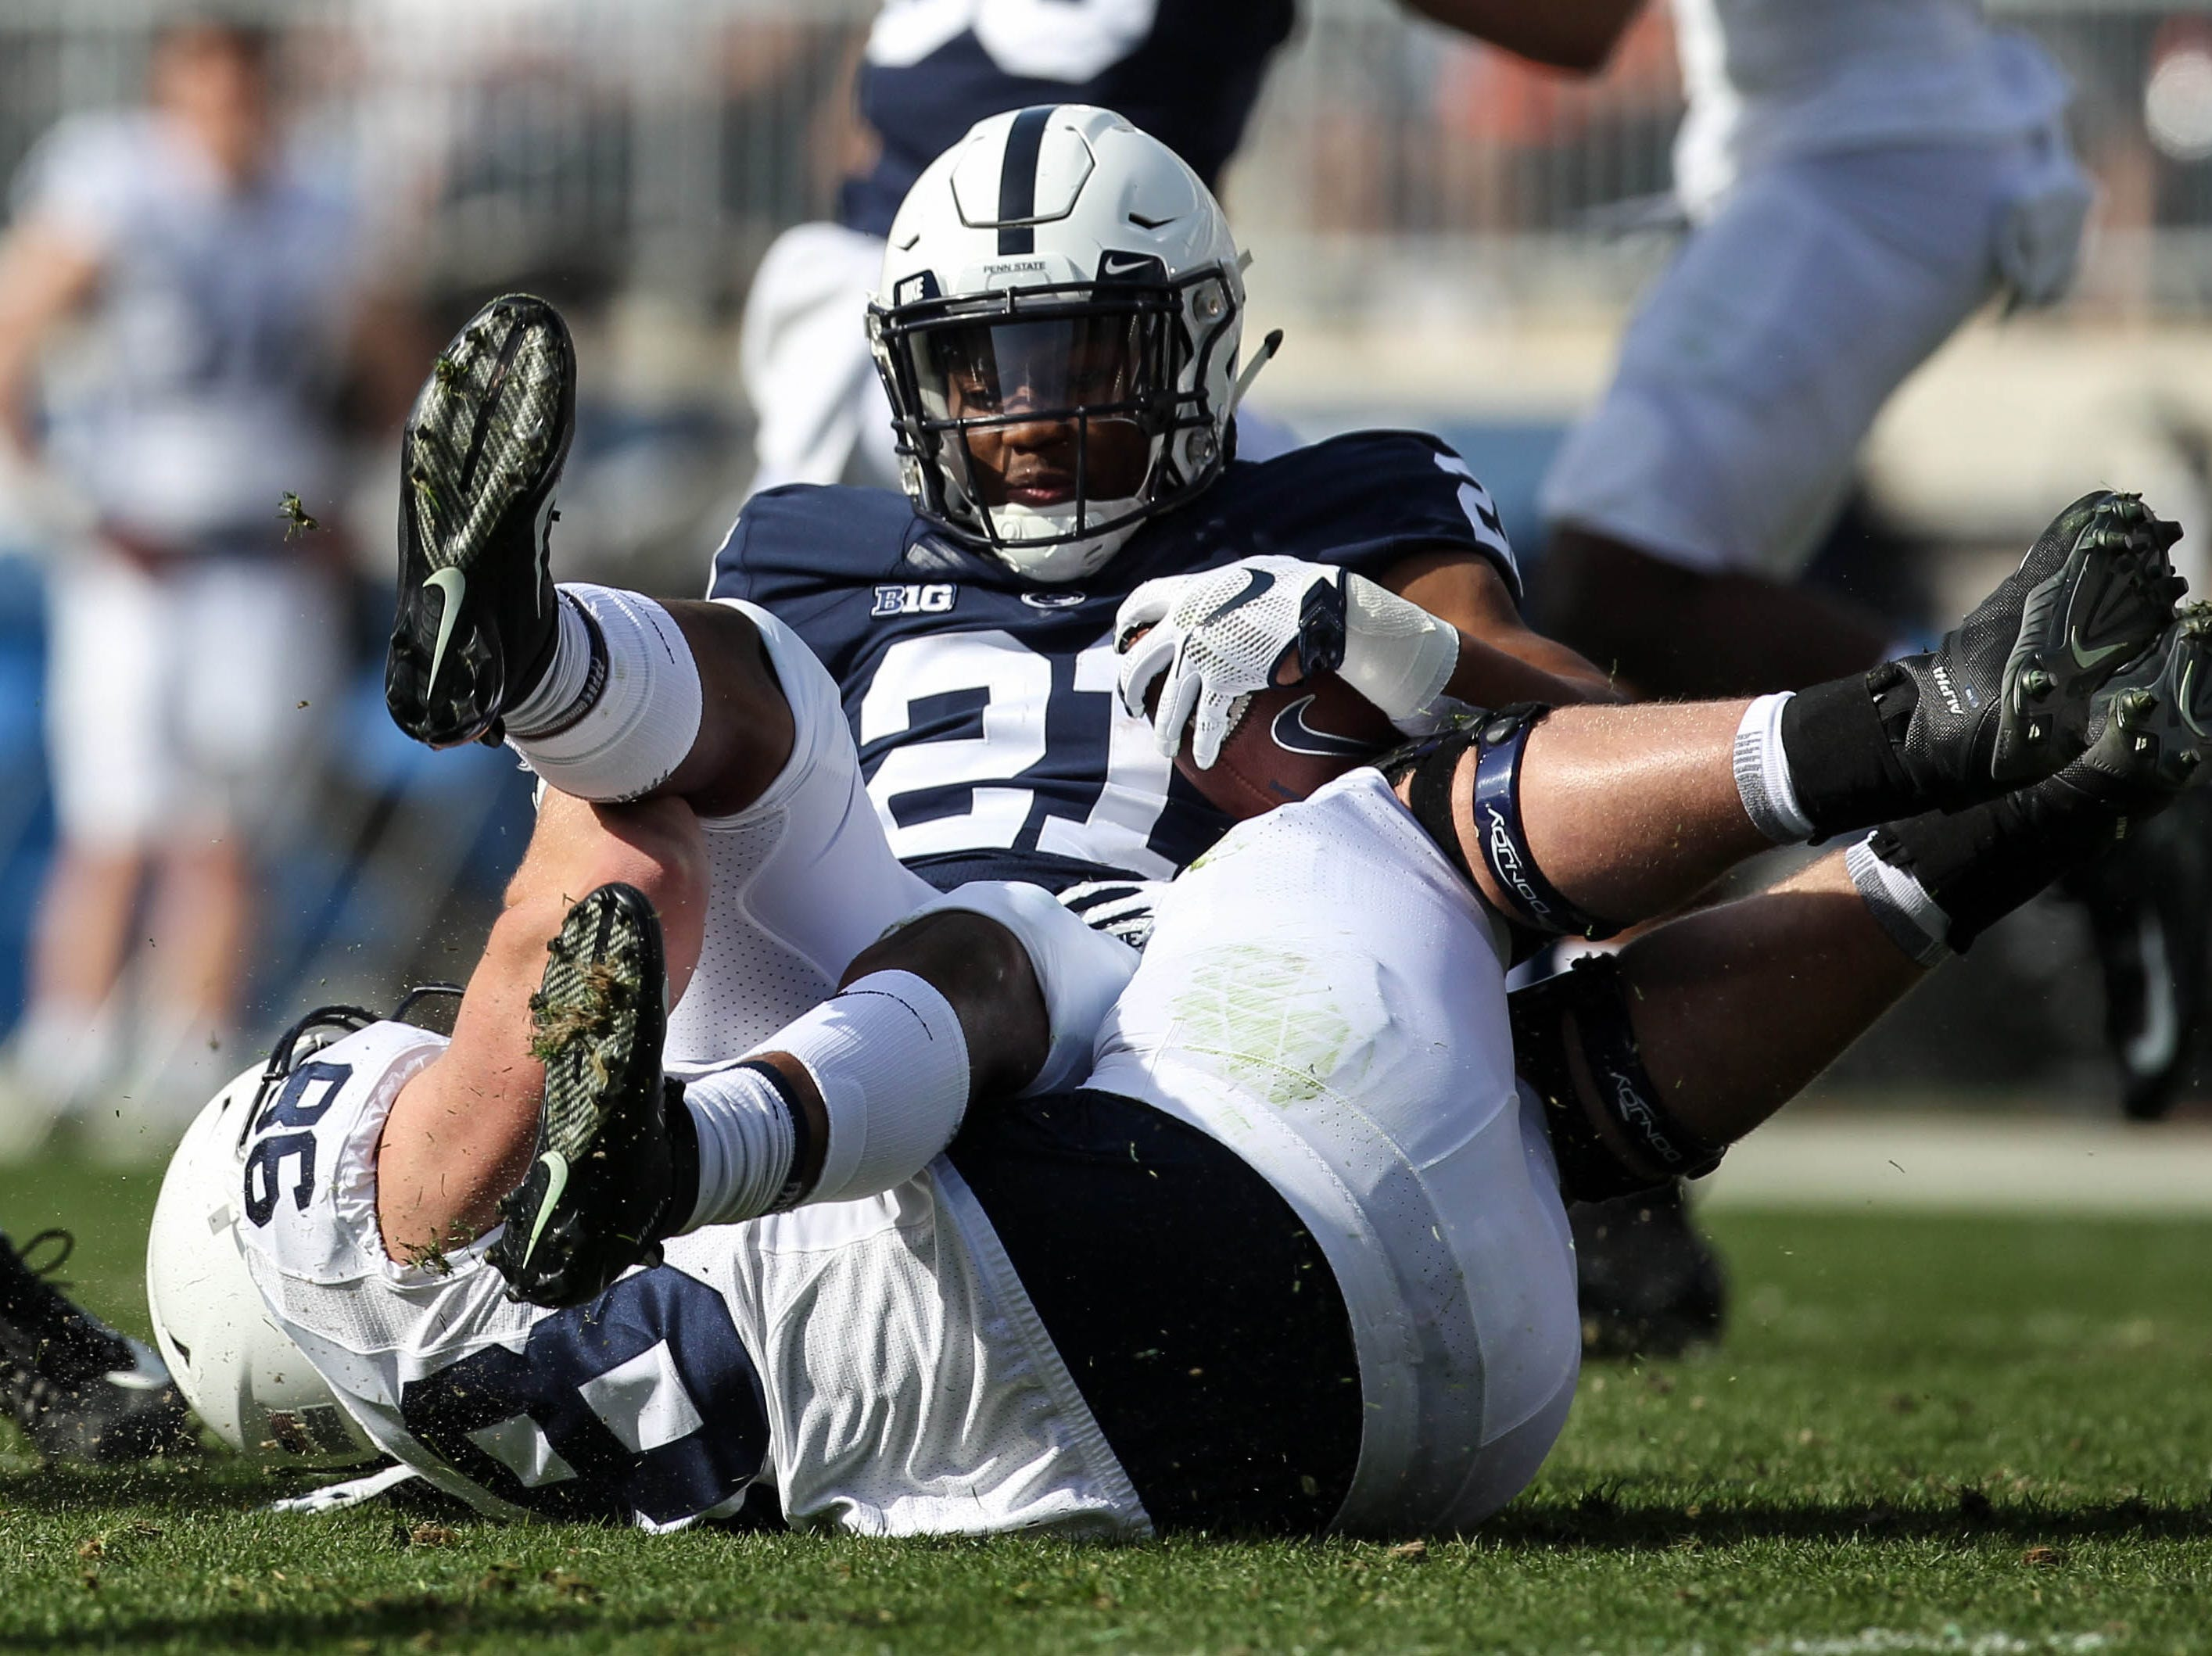 Apr 13, 2019; University Park, PA, USA; Penn State Nittany Lions running back Noah Cain (21) during the third quarter of the Blue White spring game at Beaver Stadium. The Blue team defeated the White team 24-7. Mandatory Credit: Matthew O'Haren-USA TODAY Sports